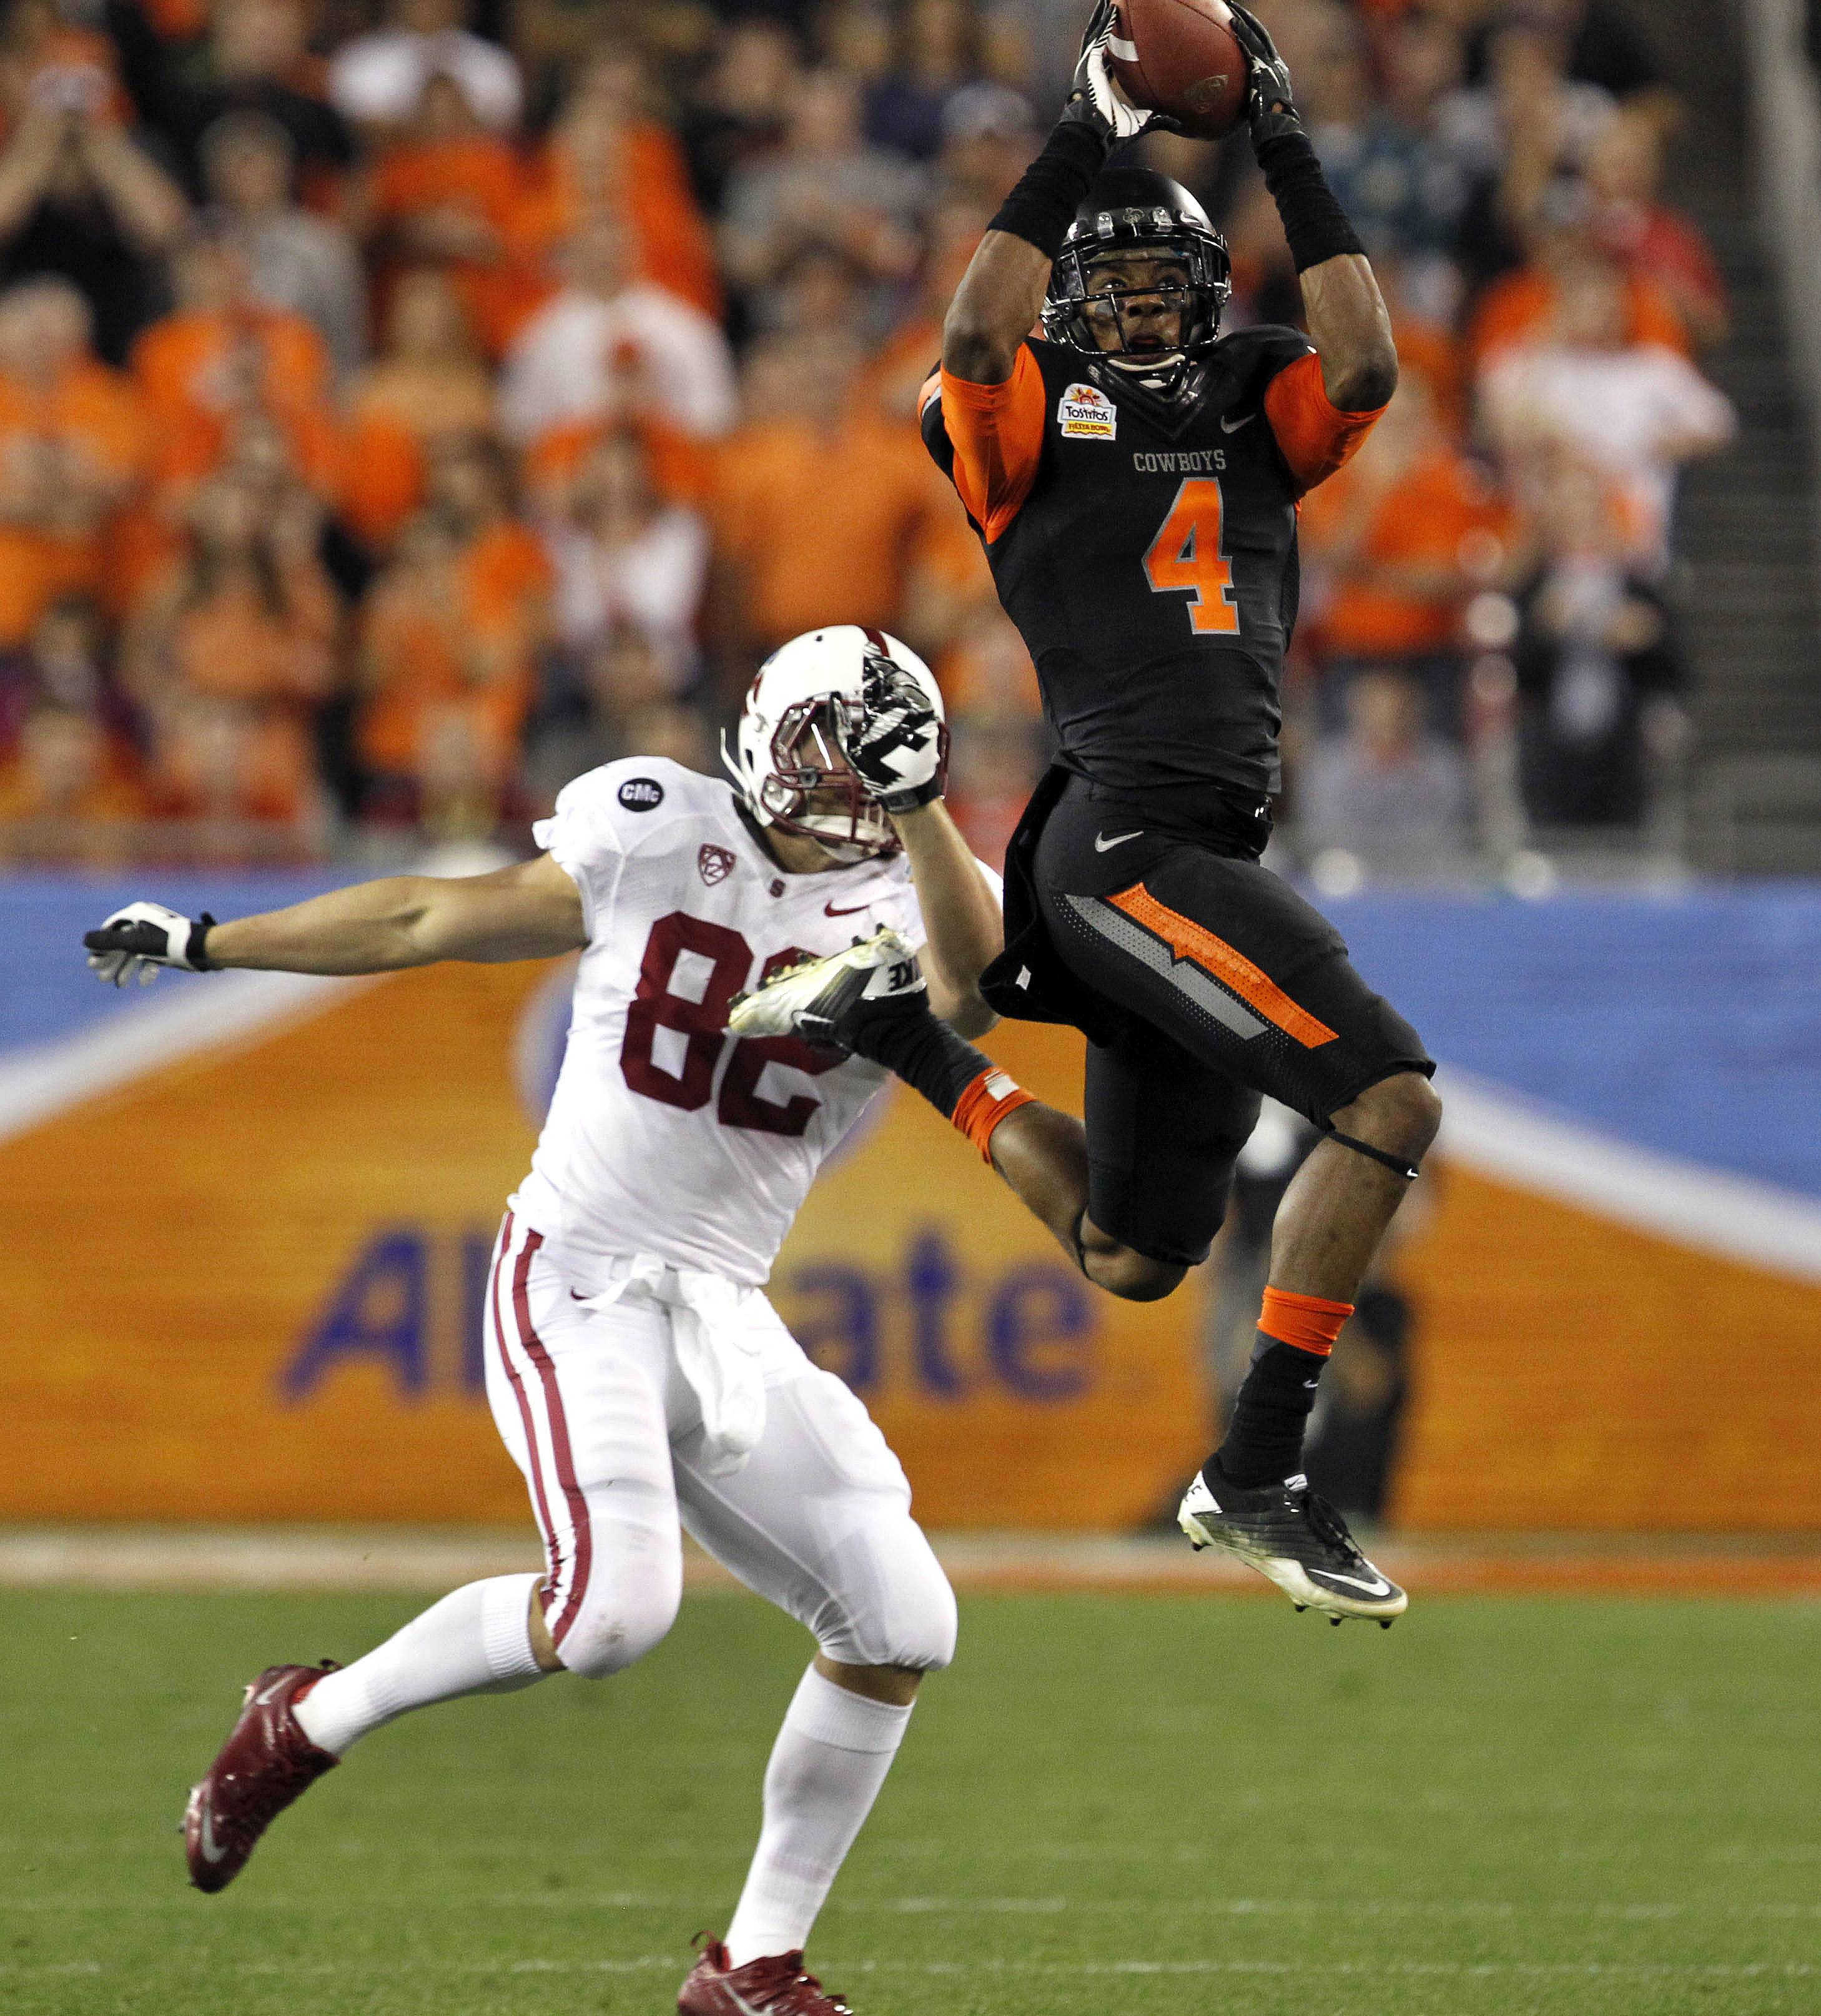 Oklahoma State cornerback Justin Gilbert, here interecepting a pass in the Fiesta Bowl is a top prospect in the NFL draft. He fnished his collegiate career with 12 interceptions.